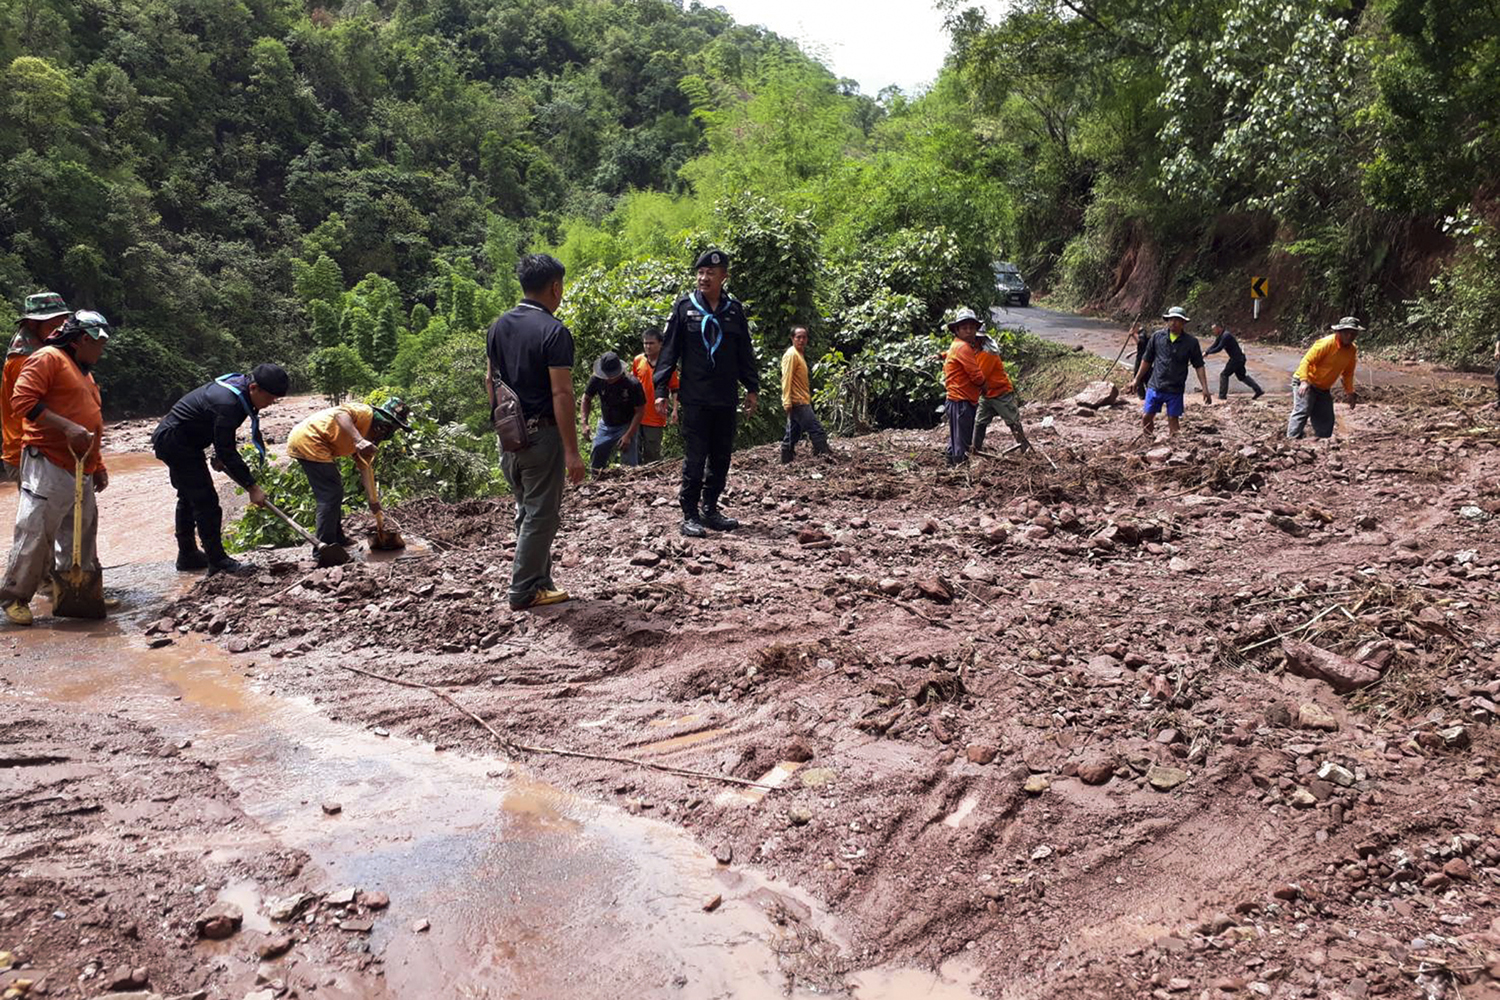 Soldiers and workers clear a mudslide that blocks a road between Chalerm Phrakiat and Bo Klue districts in Nan on Wednesday. (Photo by Rarinthorn Petchareon)